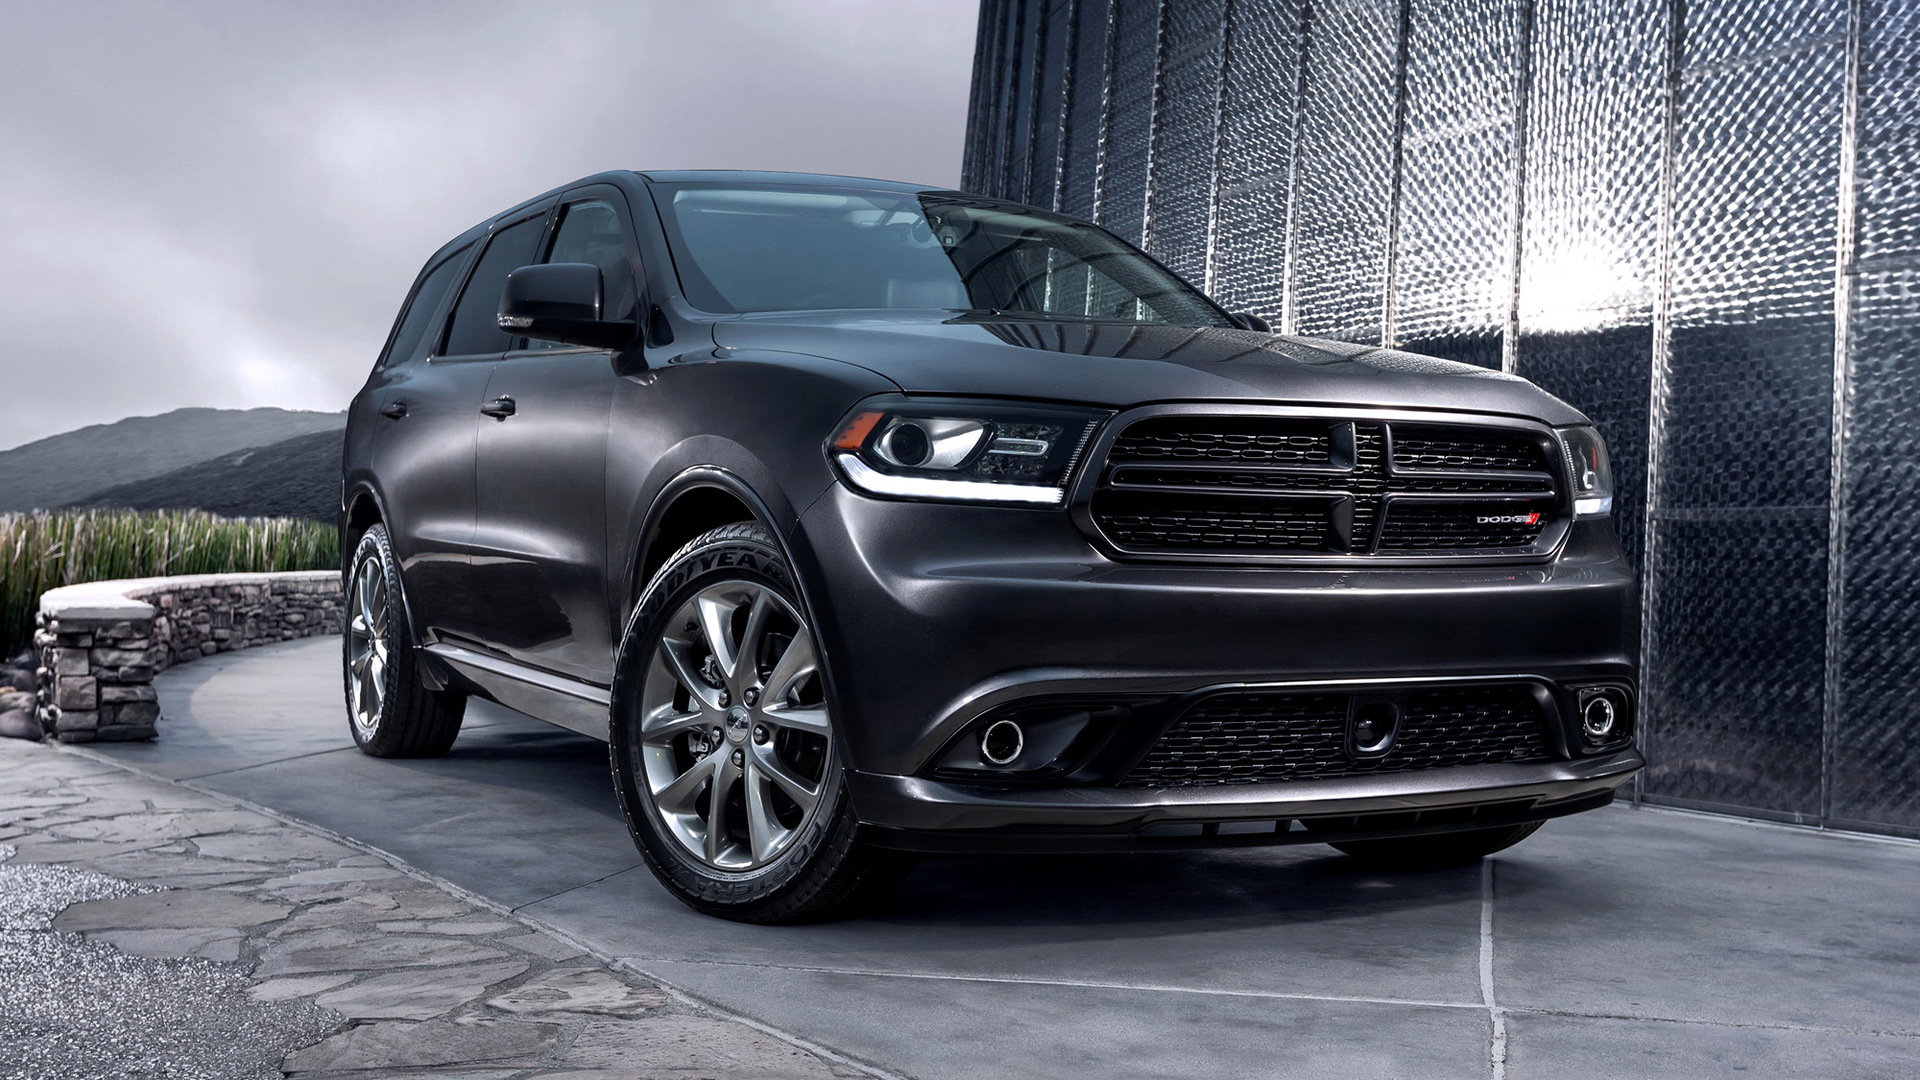 dodge durango r t 2013 wallpapers and hd images car pixel. Black Bedroom Furniture Sets. Home Design Ideas